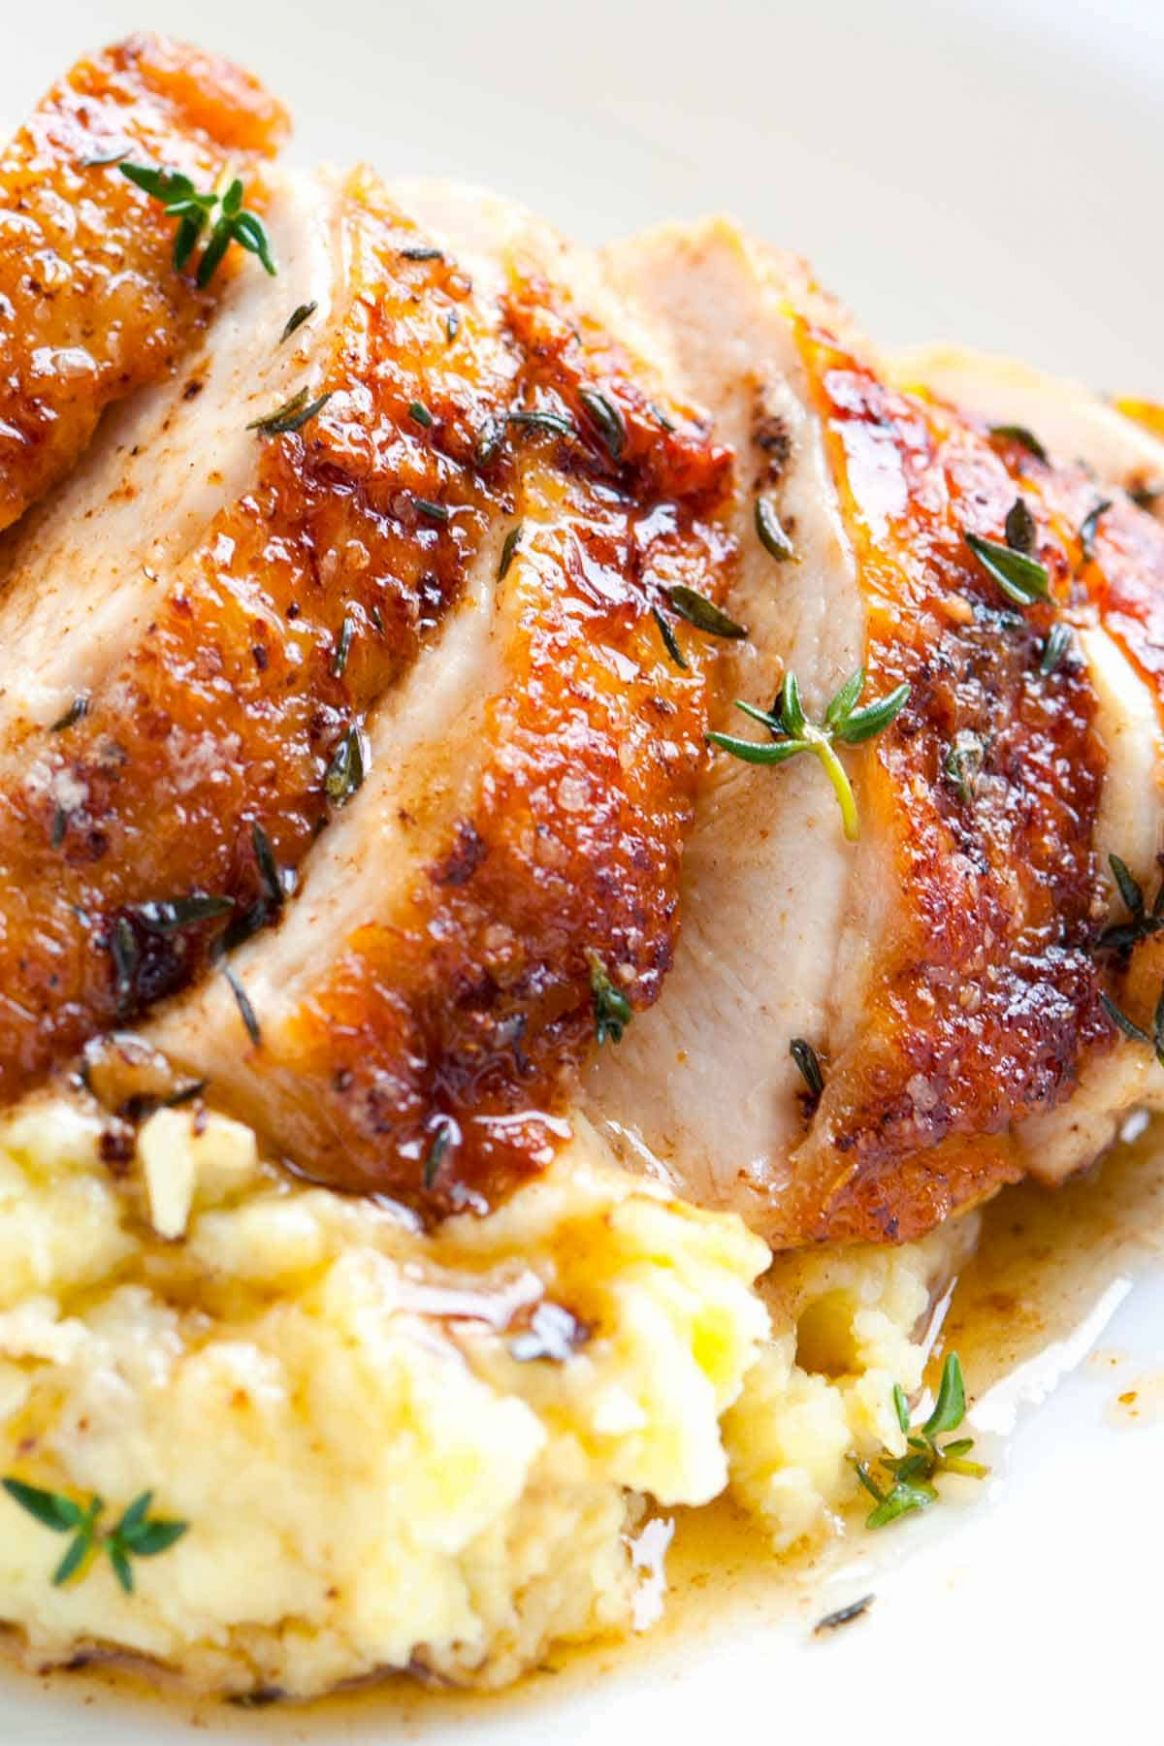 Easy Pan Roasted Chicken Breasts with Thyme - Recipes Chicken Breast Stovetop